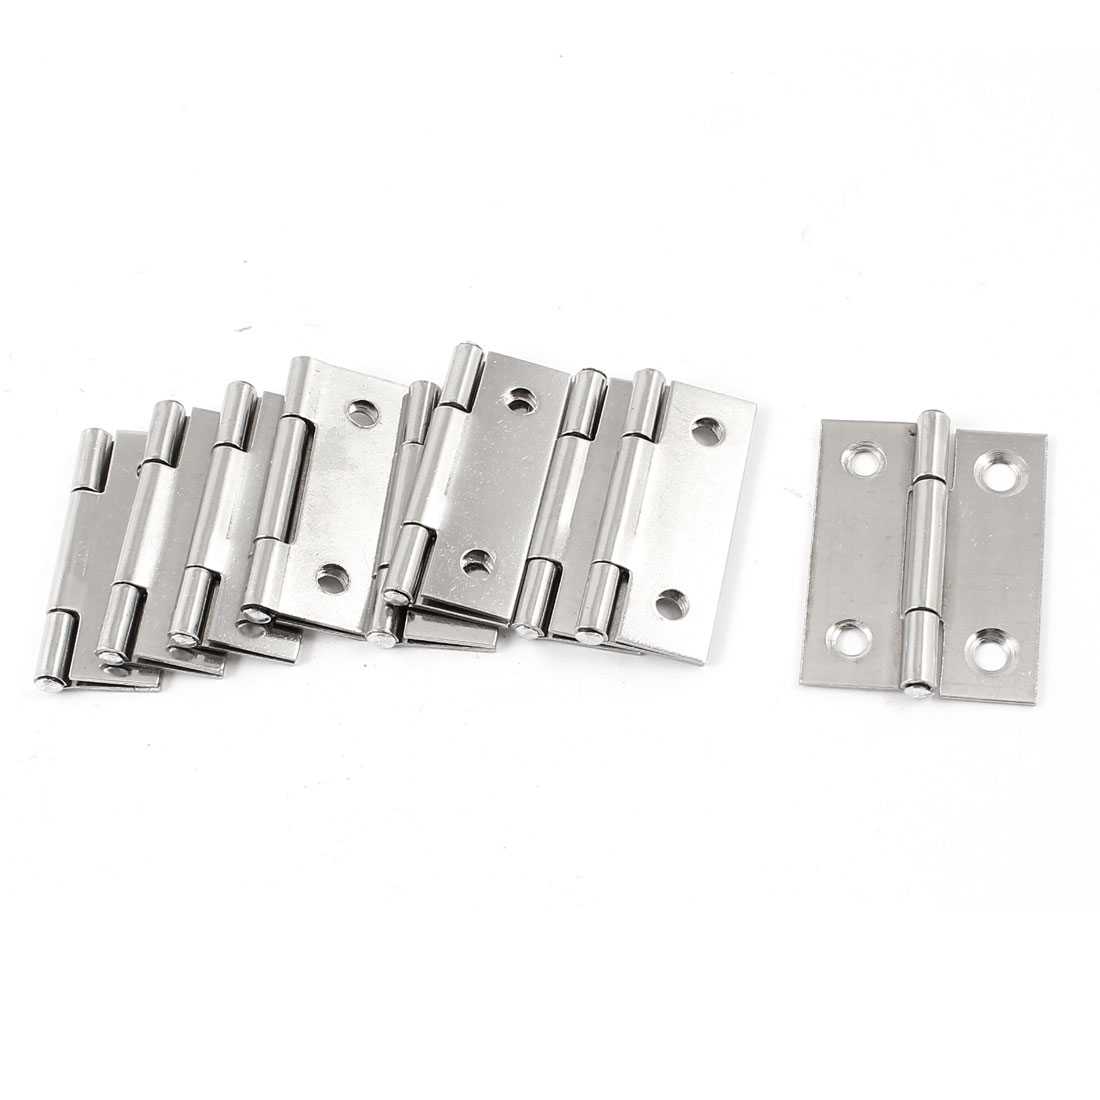 "9 Pcs Stainless Steel 4 Mounting Holes Door Hinges Replacement 1.8"" Length"